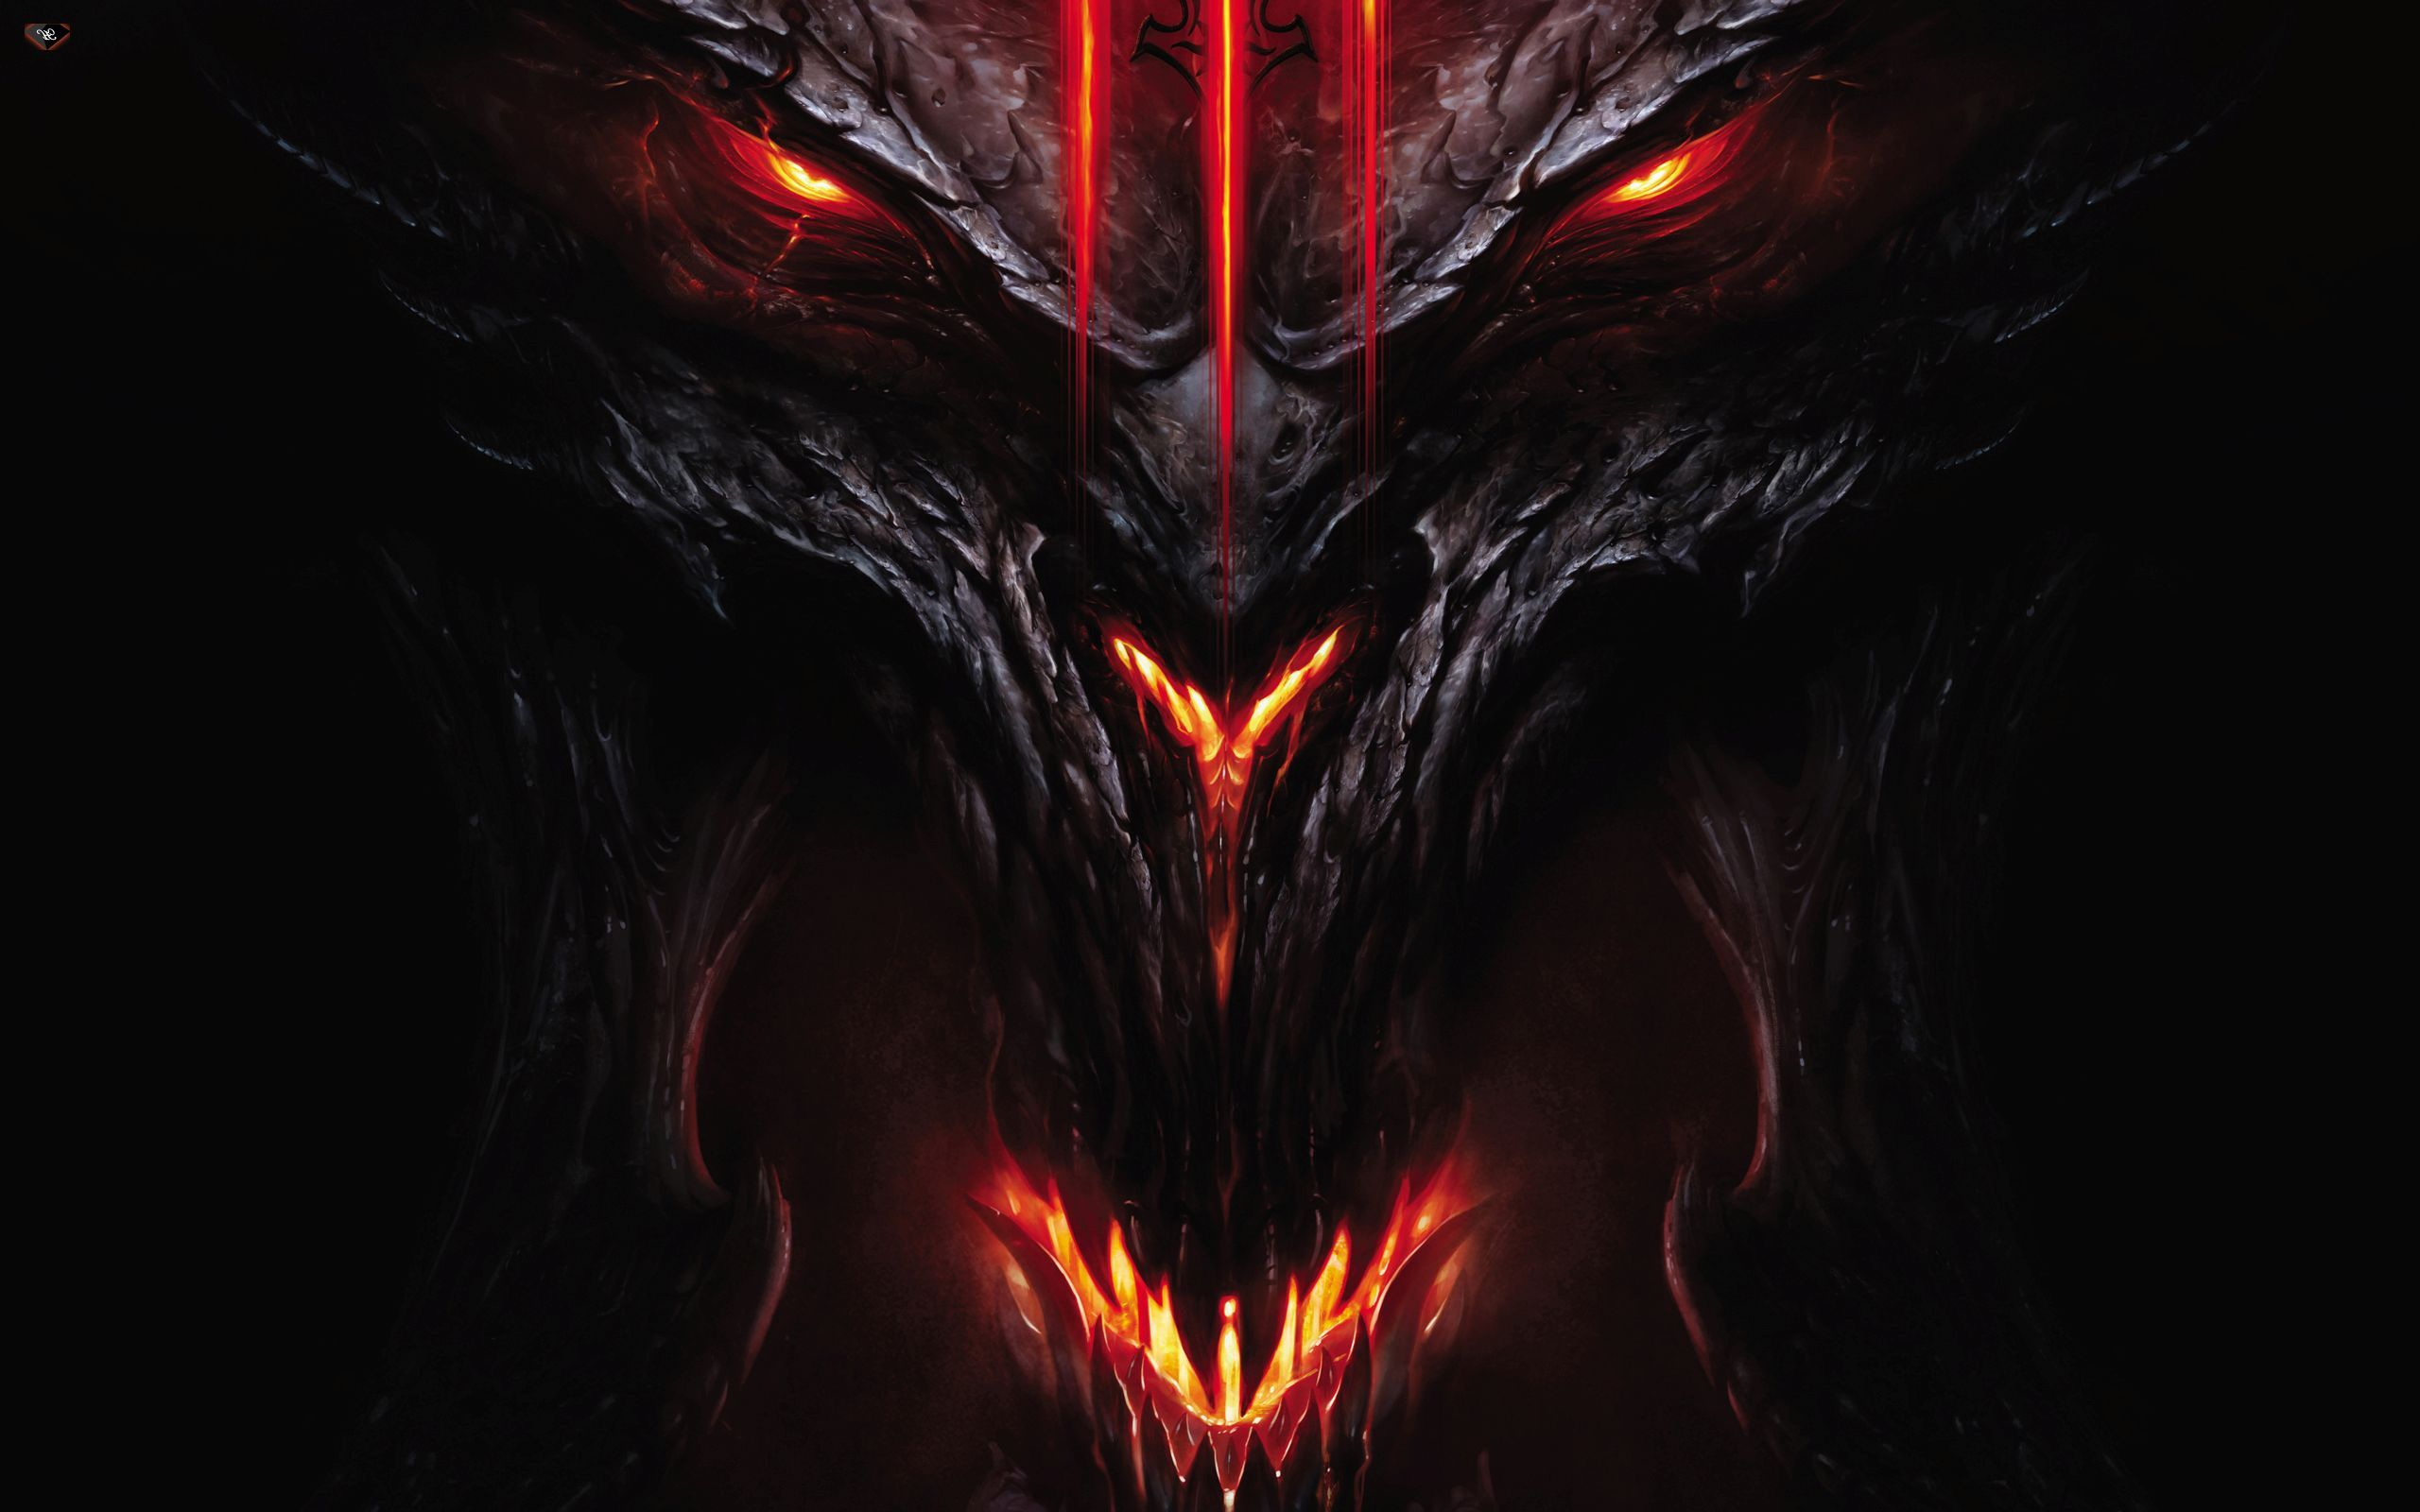 Collection of Diablo 3 Wallpaper on HDWallpapers